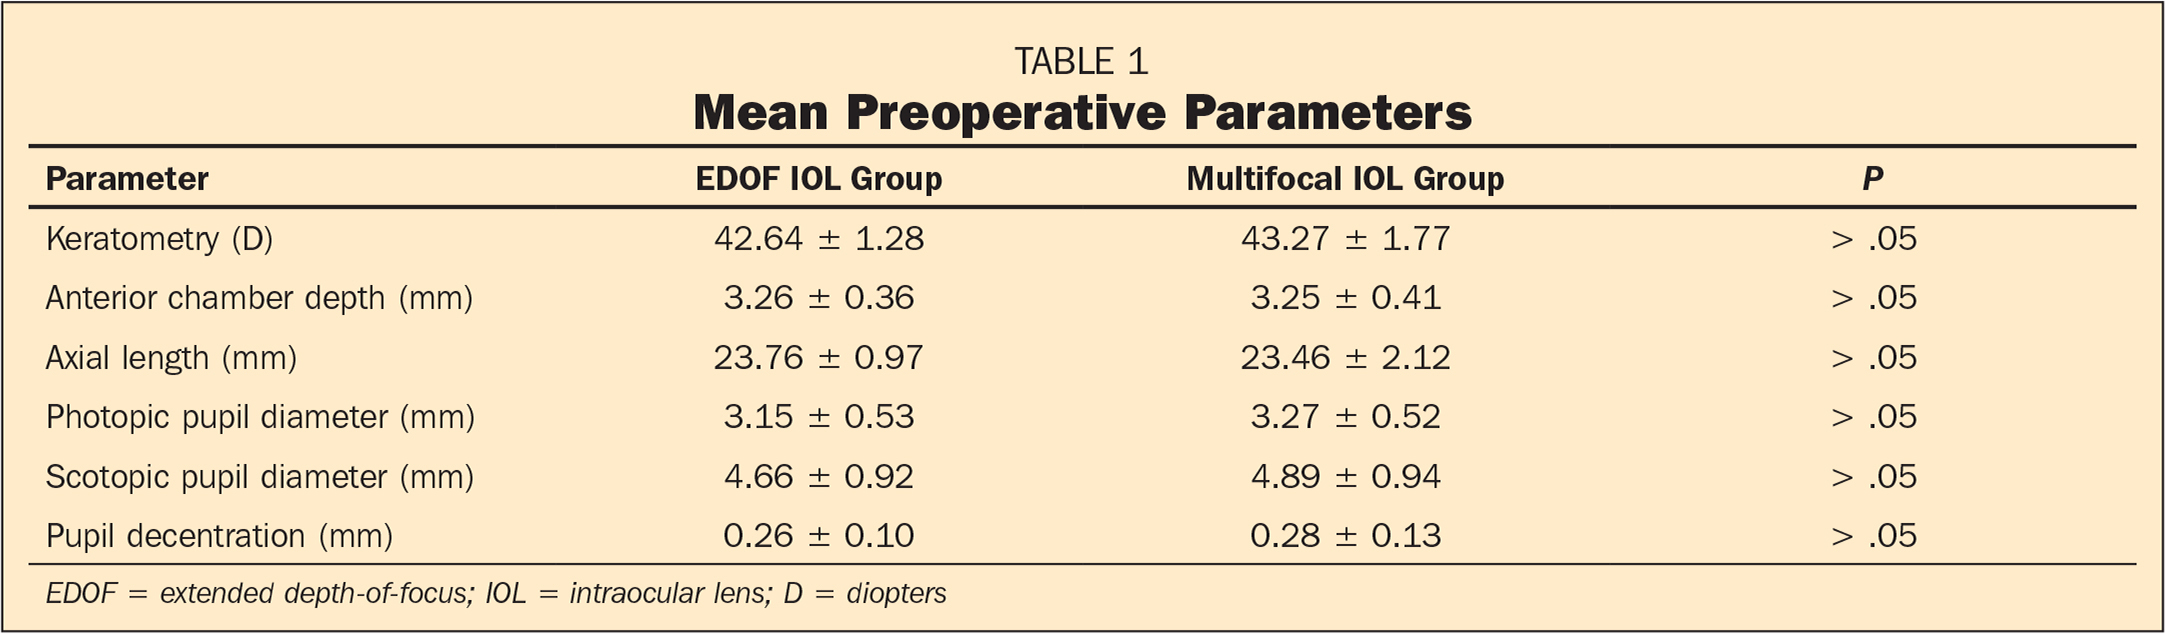 Mean Preoperative Parameters